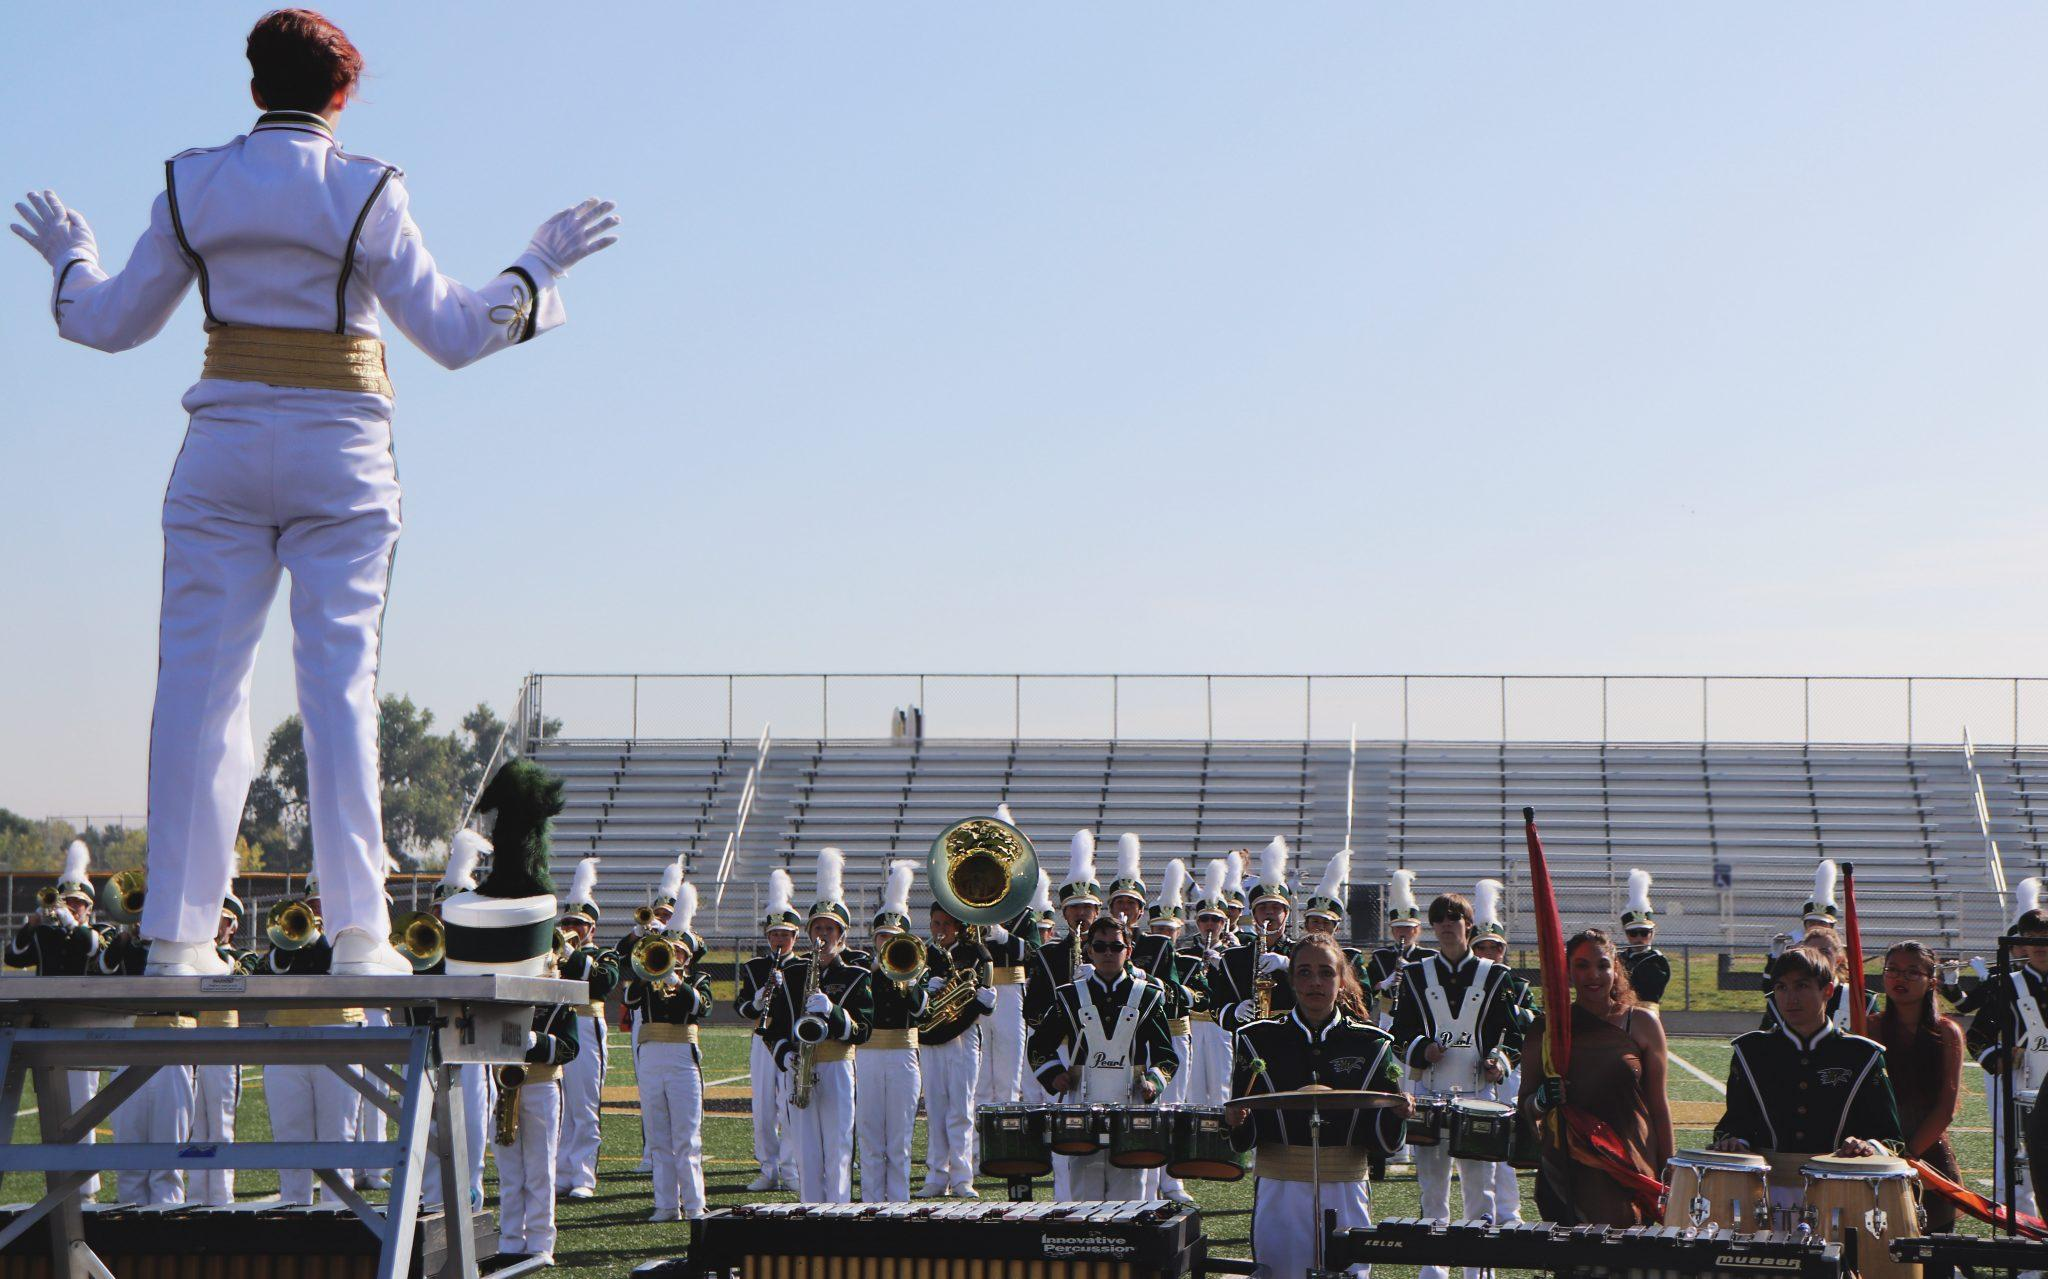 PHOTOS: Marching Band at Friendship Cup Festival